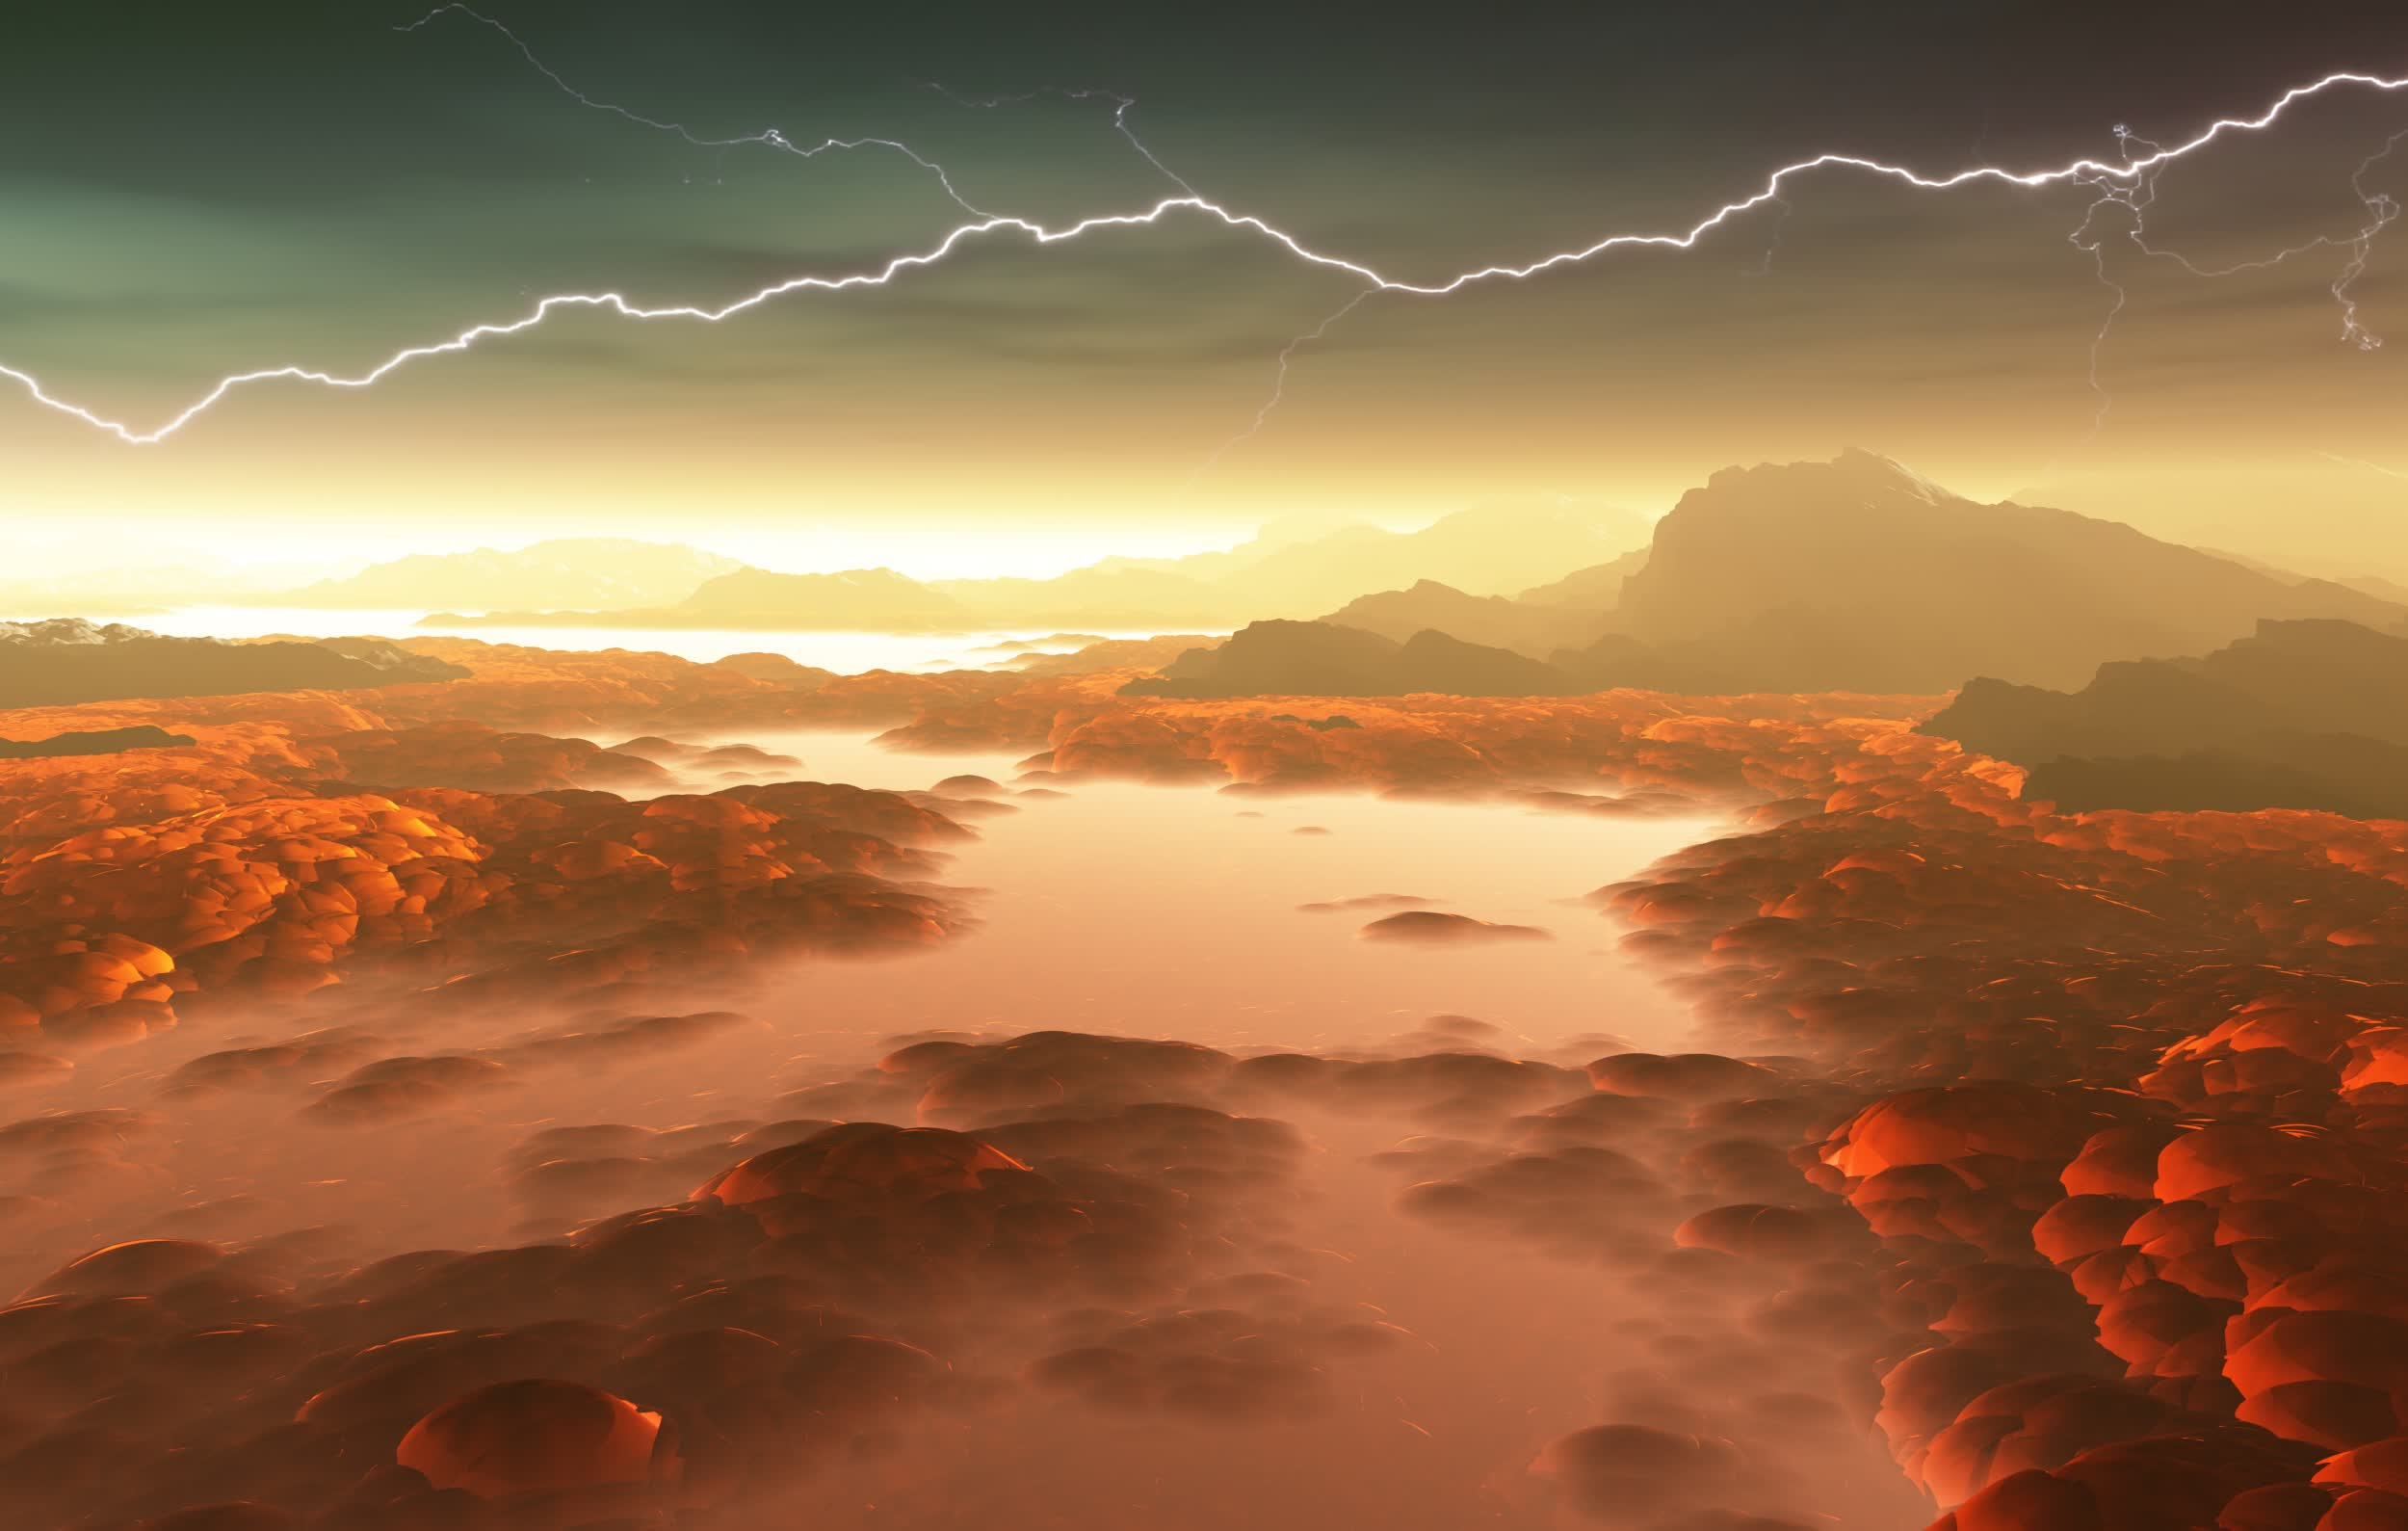 Astronomers may have found signs of life in the atmosphere of Venus